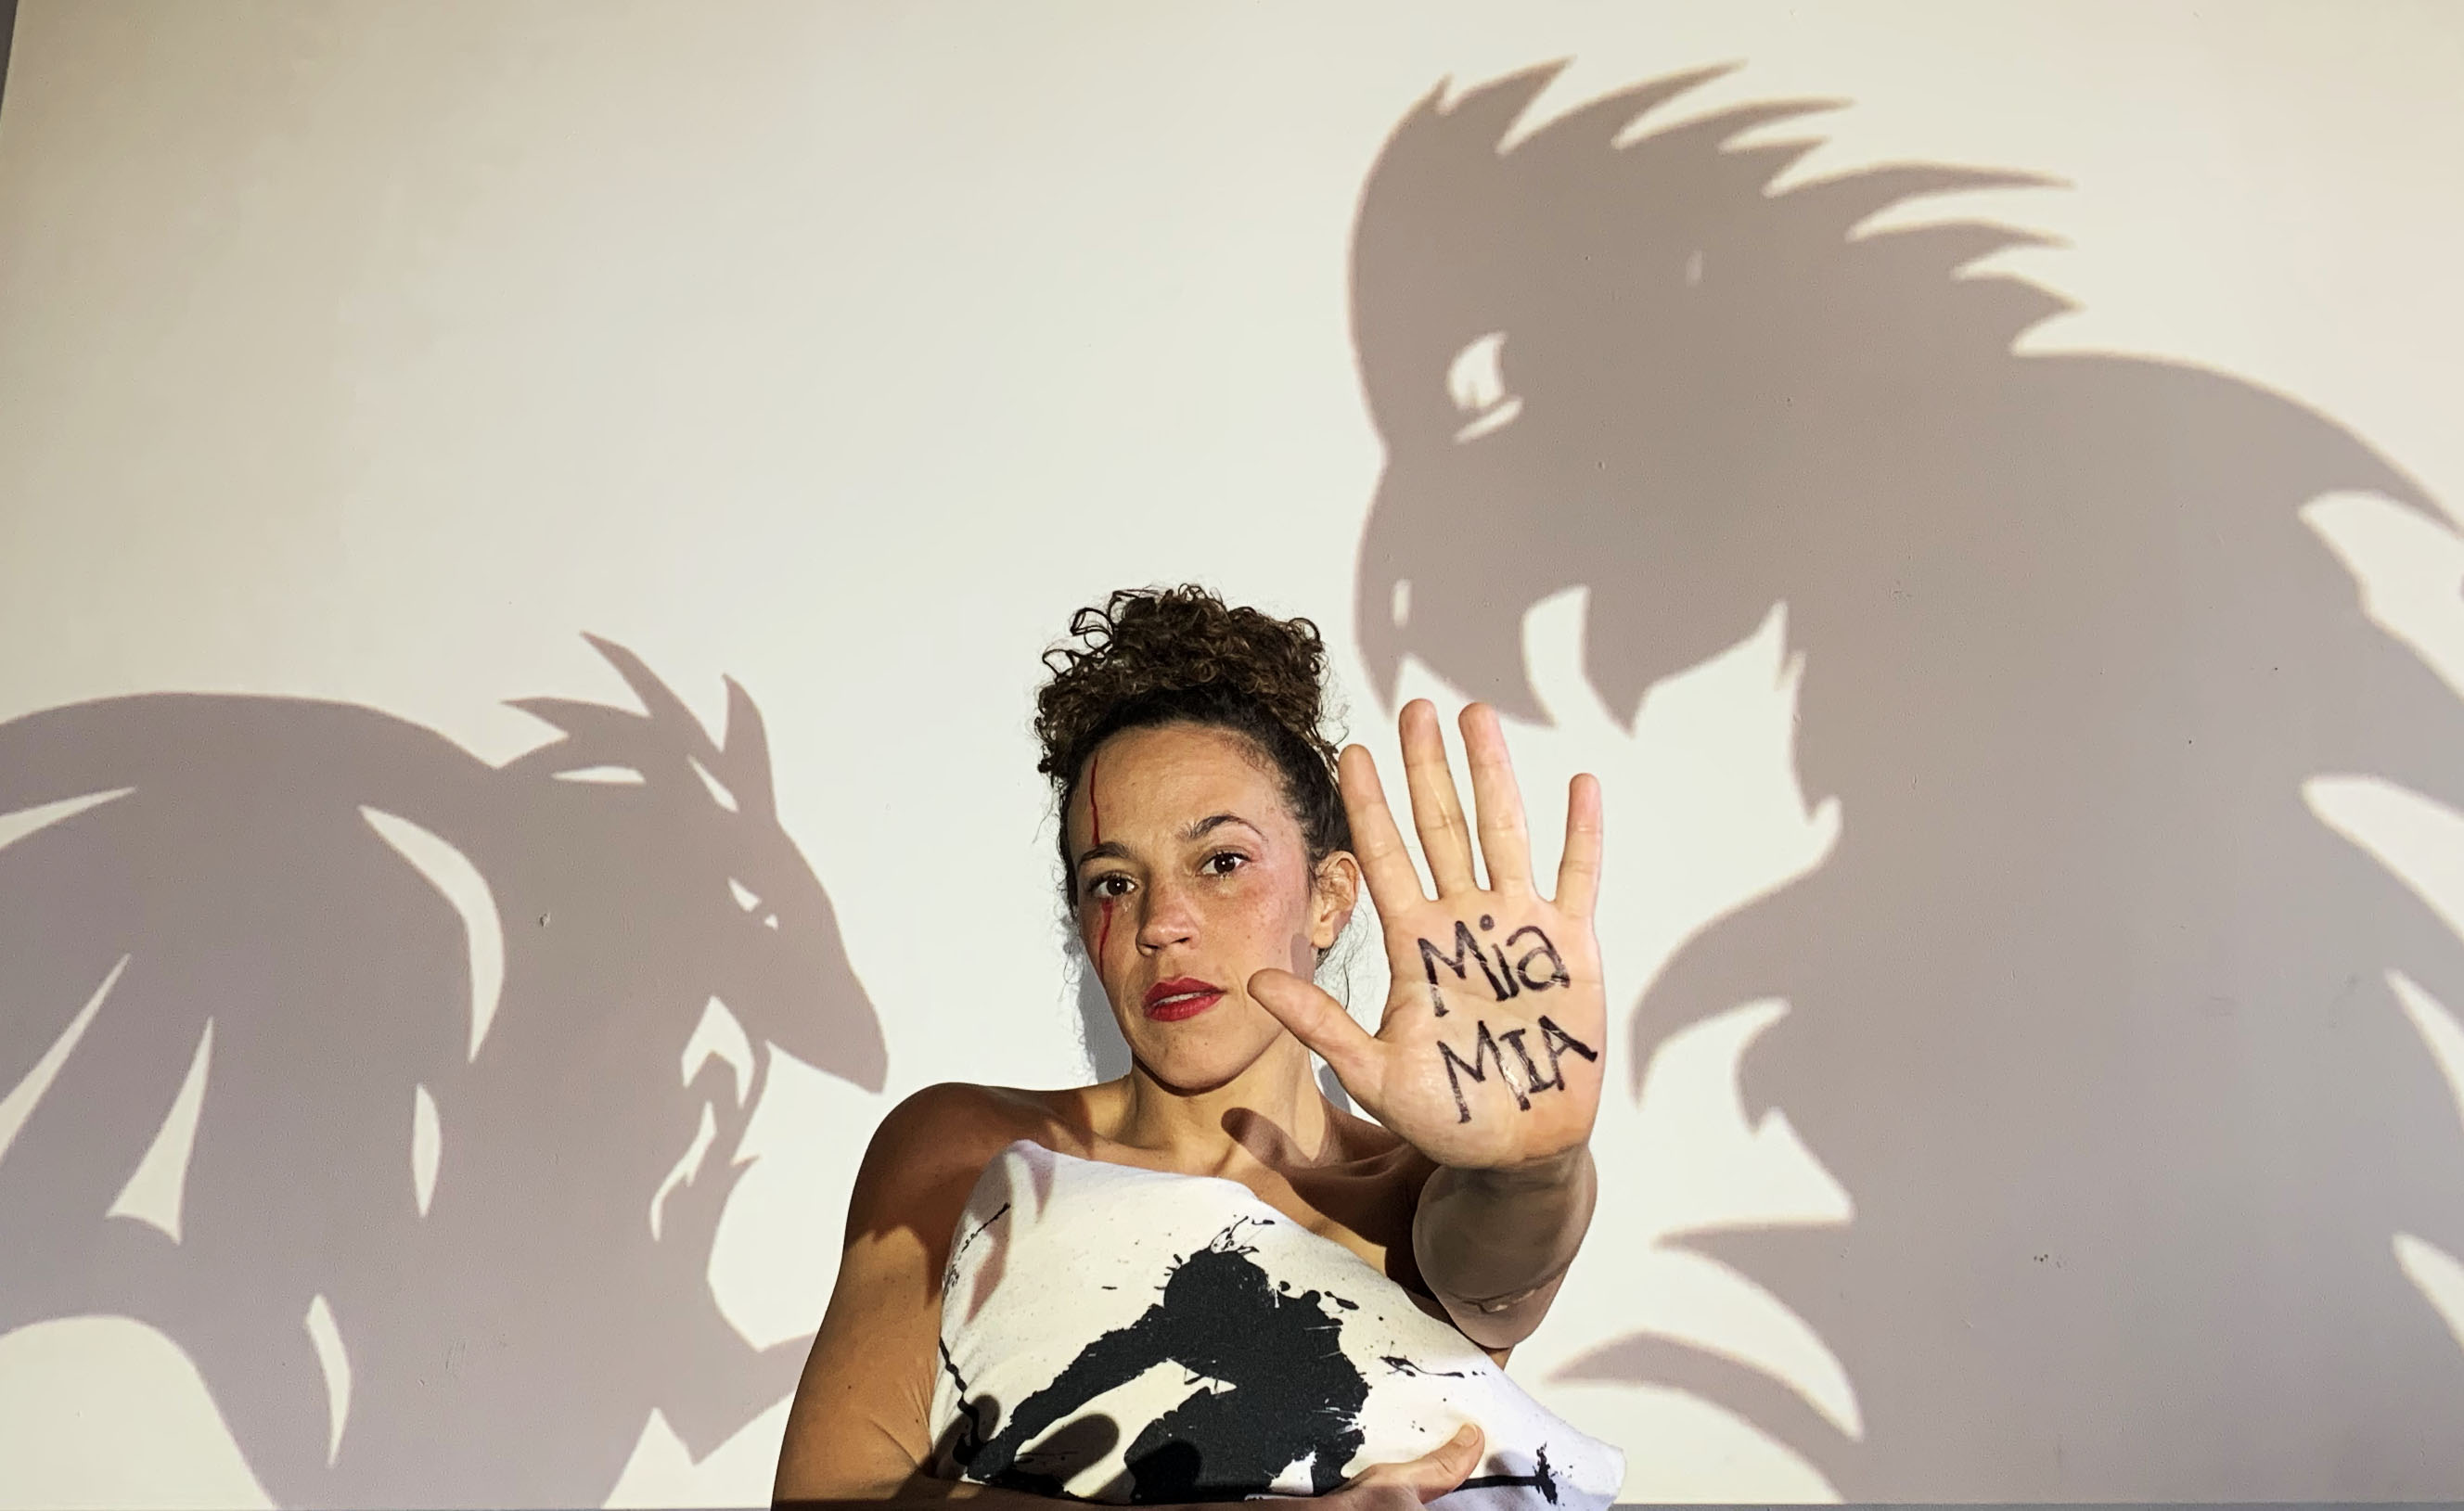 Charlotte. An actress stands in front of a white wall with shadow dragons on the wall. She extends her hand forward with writing on it using black paint. She is wearing a white top.